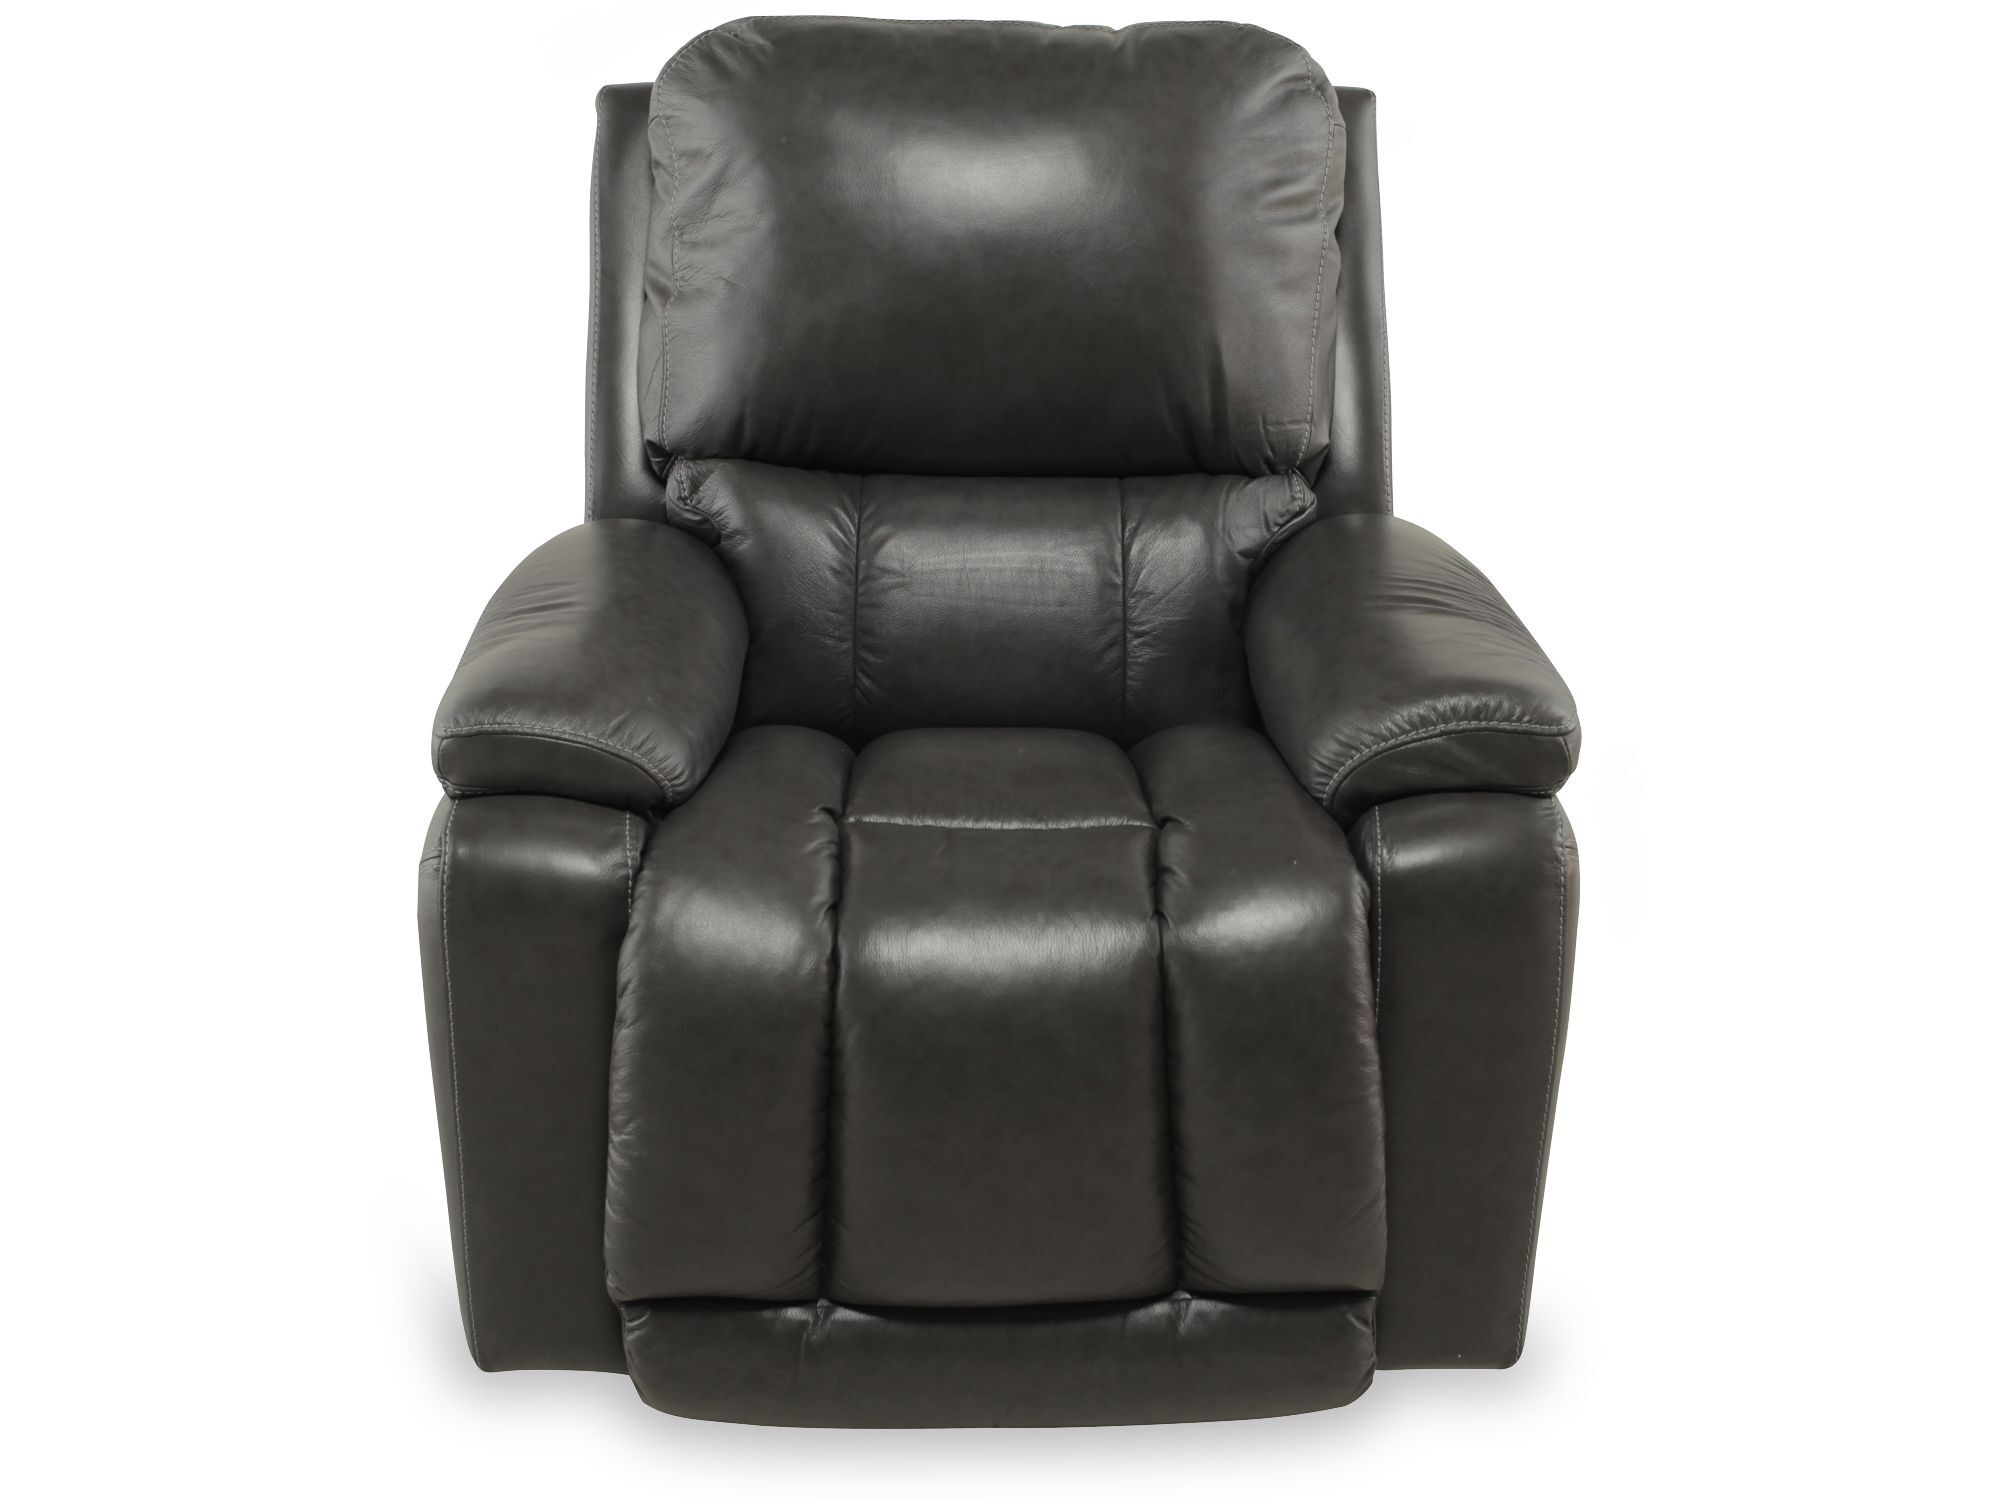 La-Z-Boy Greyson Power Recliner ...  sc 1 st  Mathis Brothers & Recliners - Reclining Chairs u0026 Sofas | Mathis Brothers islam-shia.org